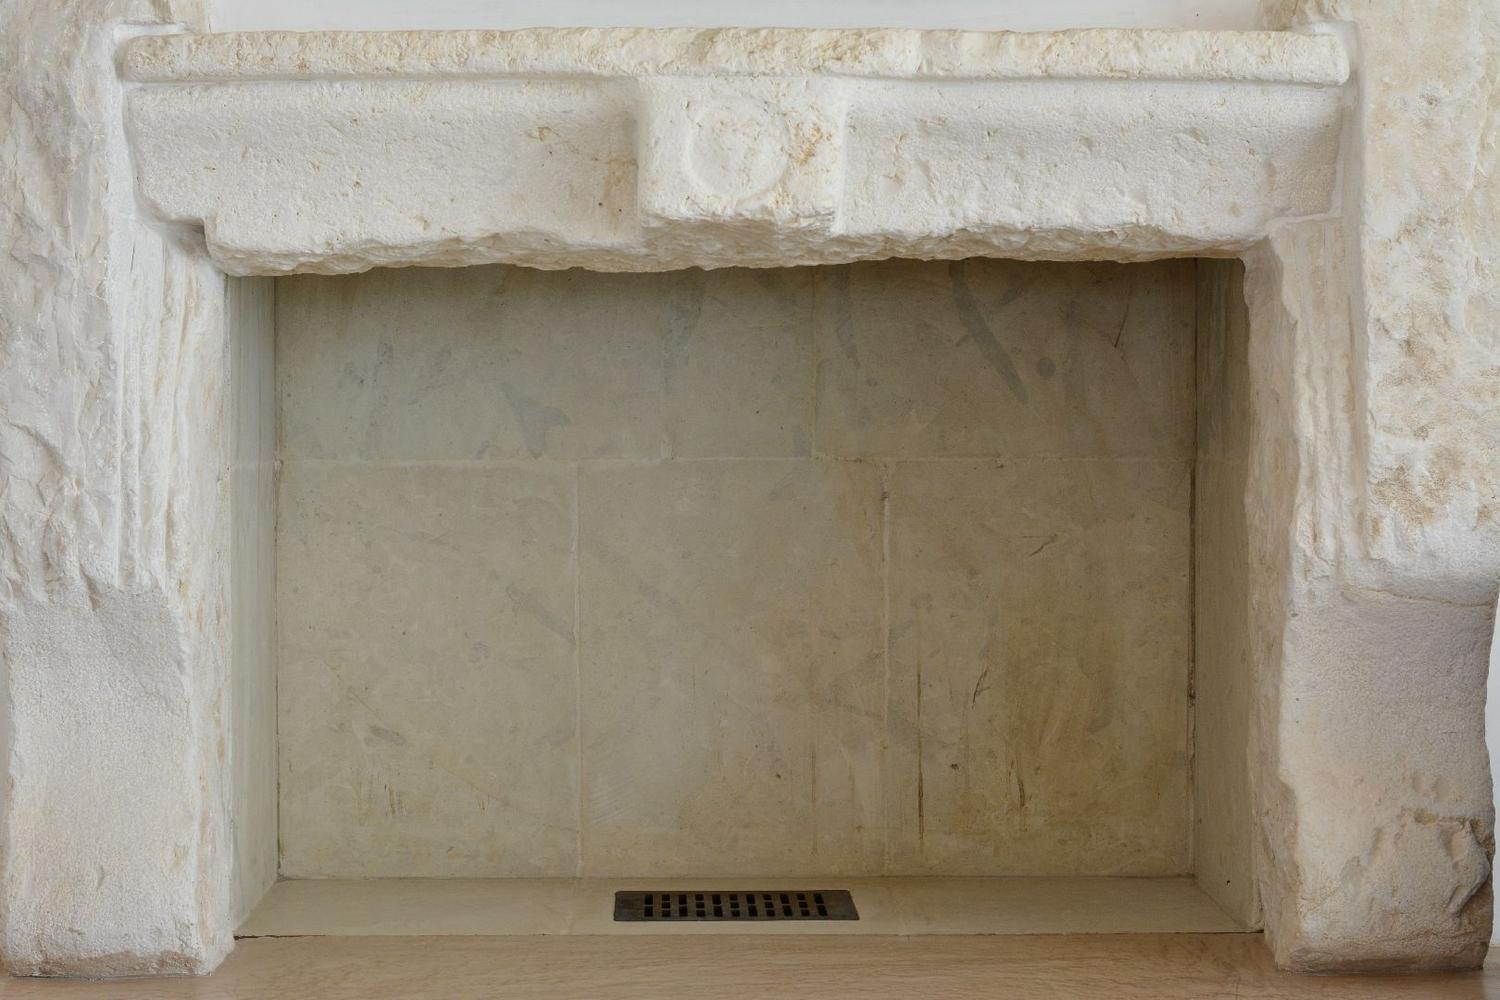 Lounge area fireplace detail